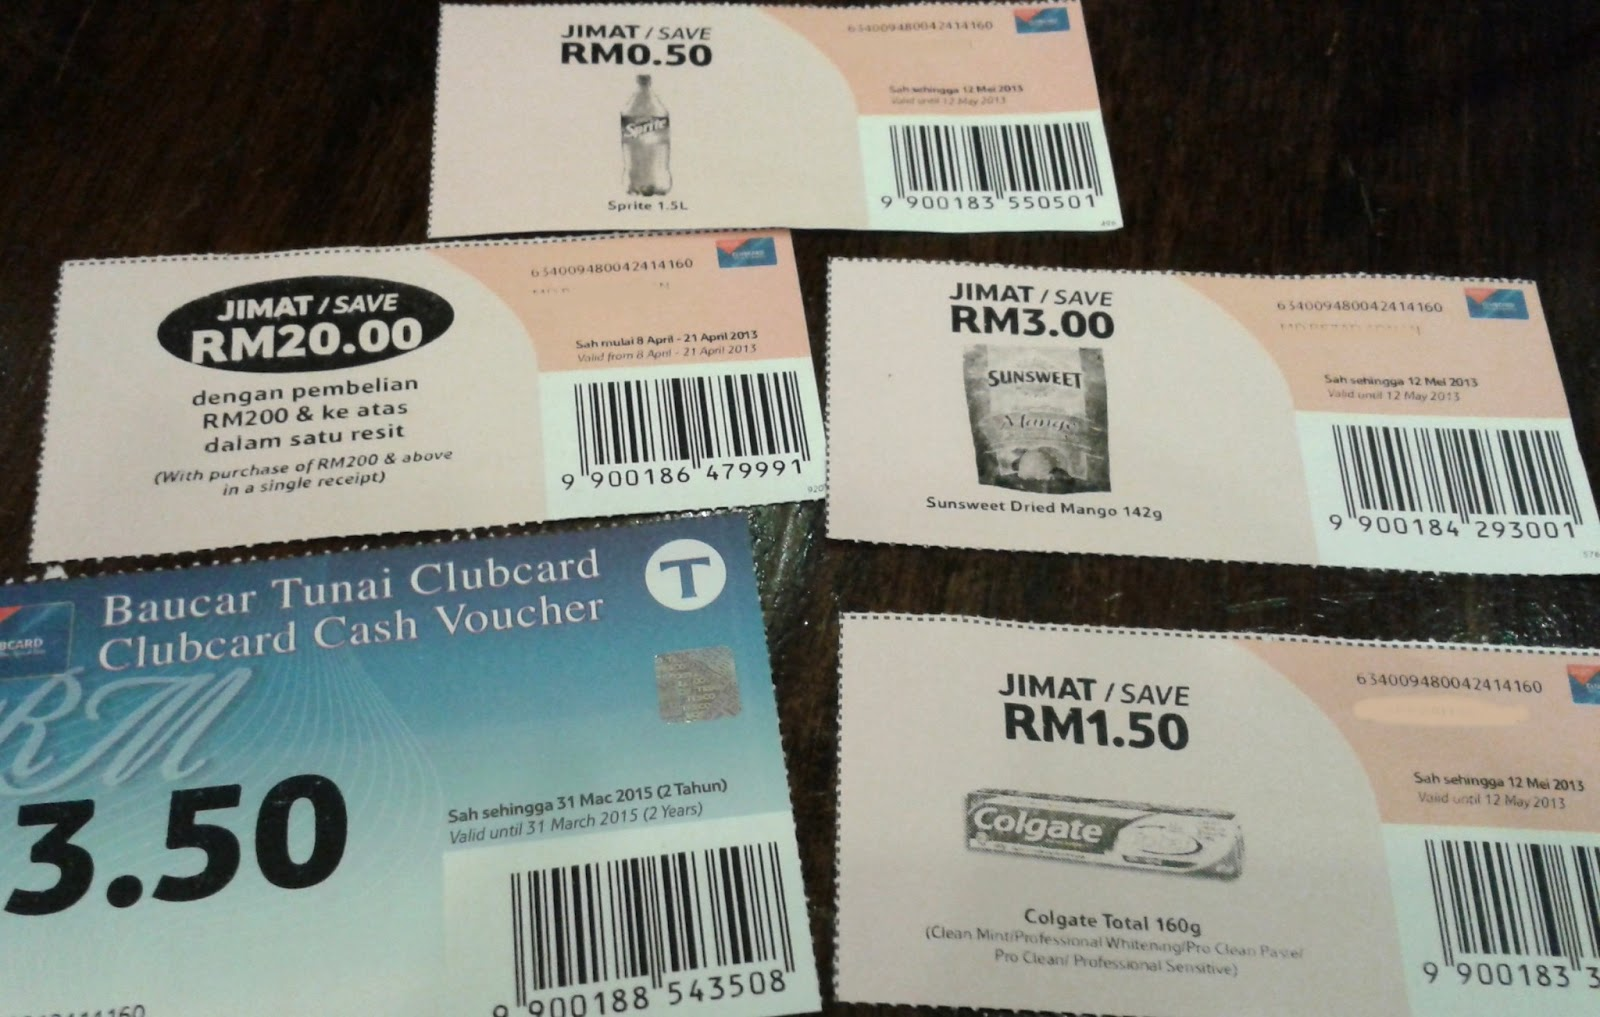 Using Coupons Tesco Online Bed Bath And Beyond Coupon 5 Off